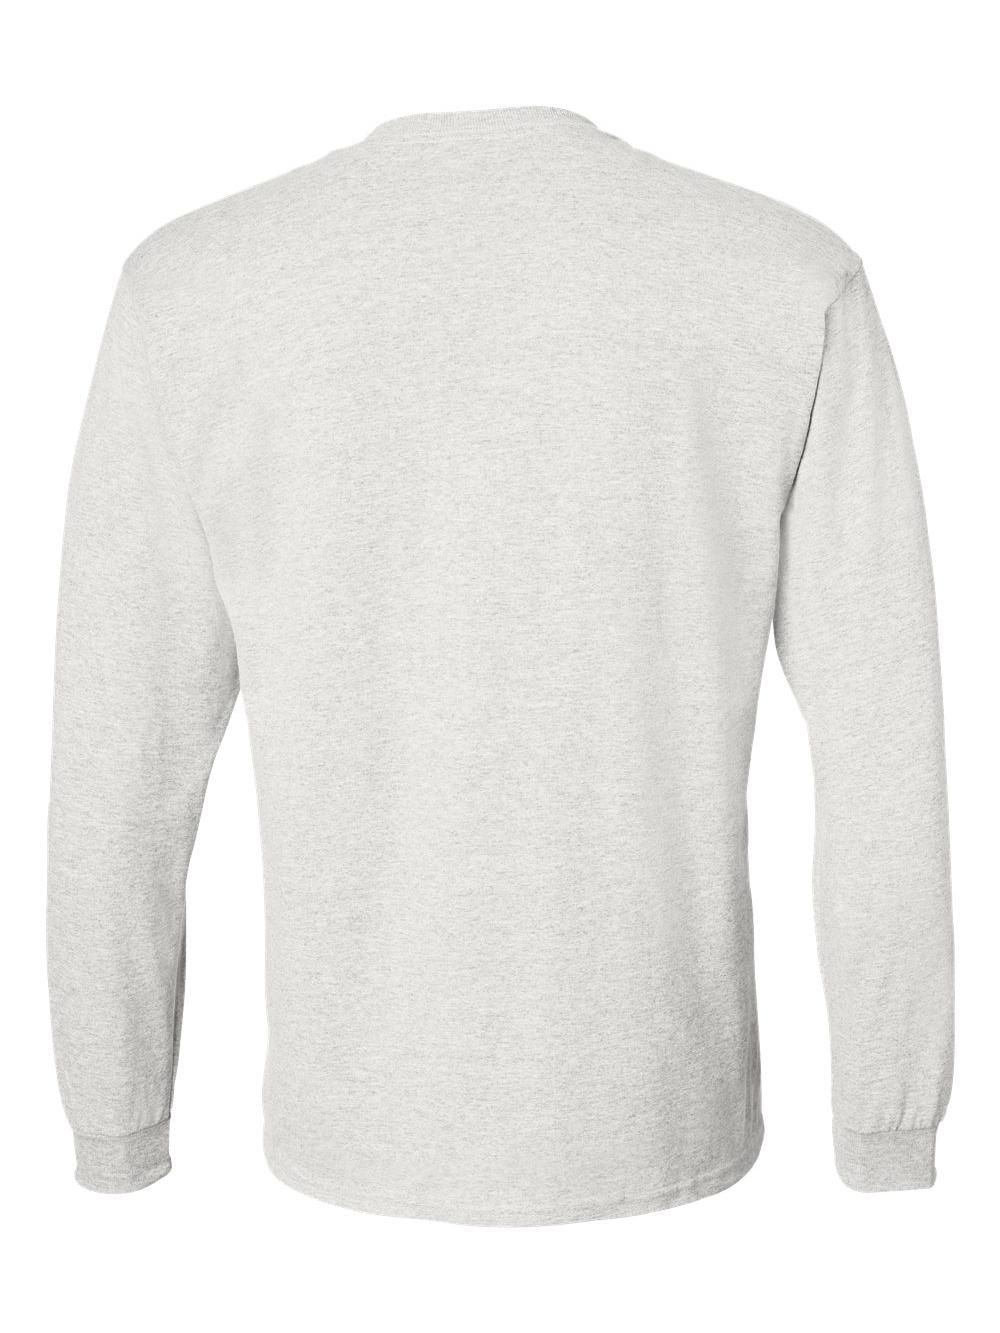 Gildan-DryBlend-50-50-Long-Sleeve-T-Shirt-8400 thumbnail 4